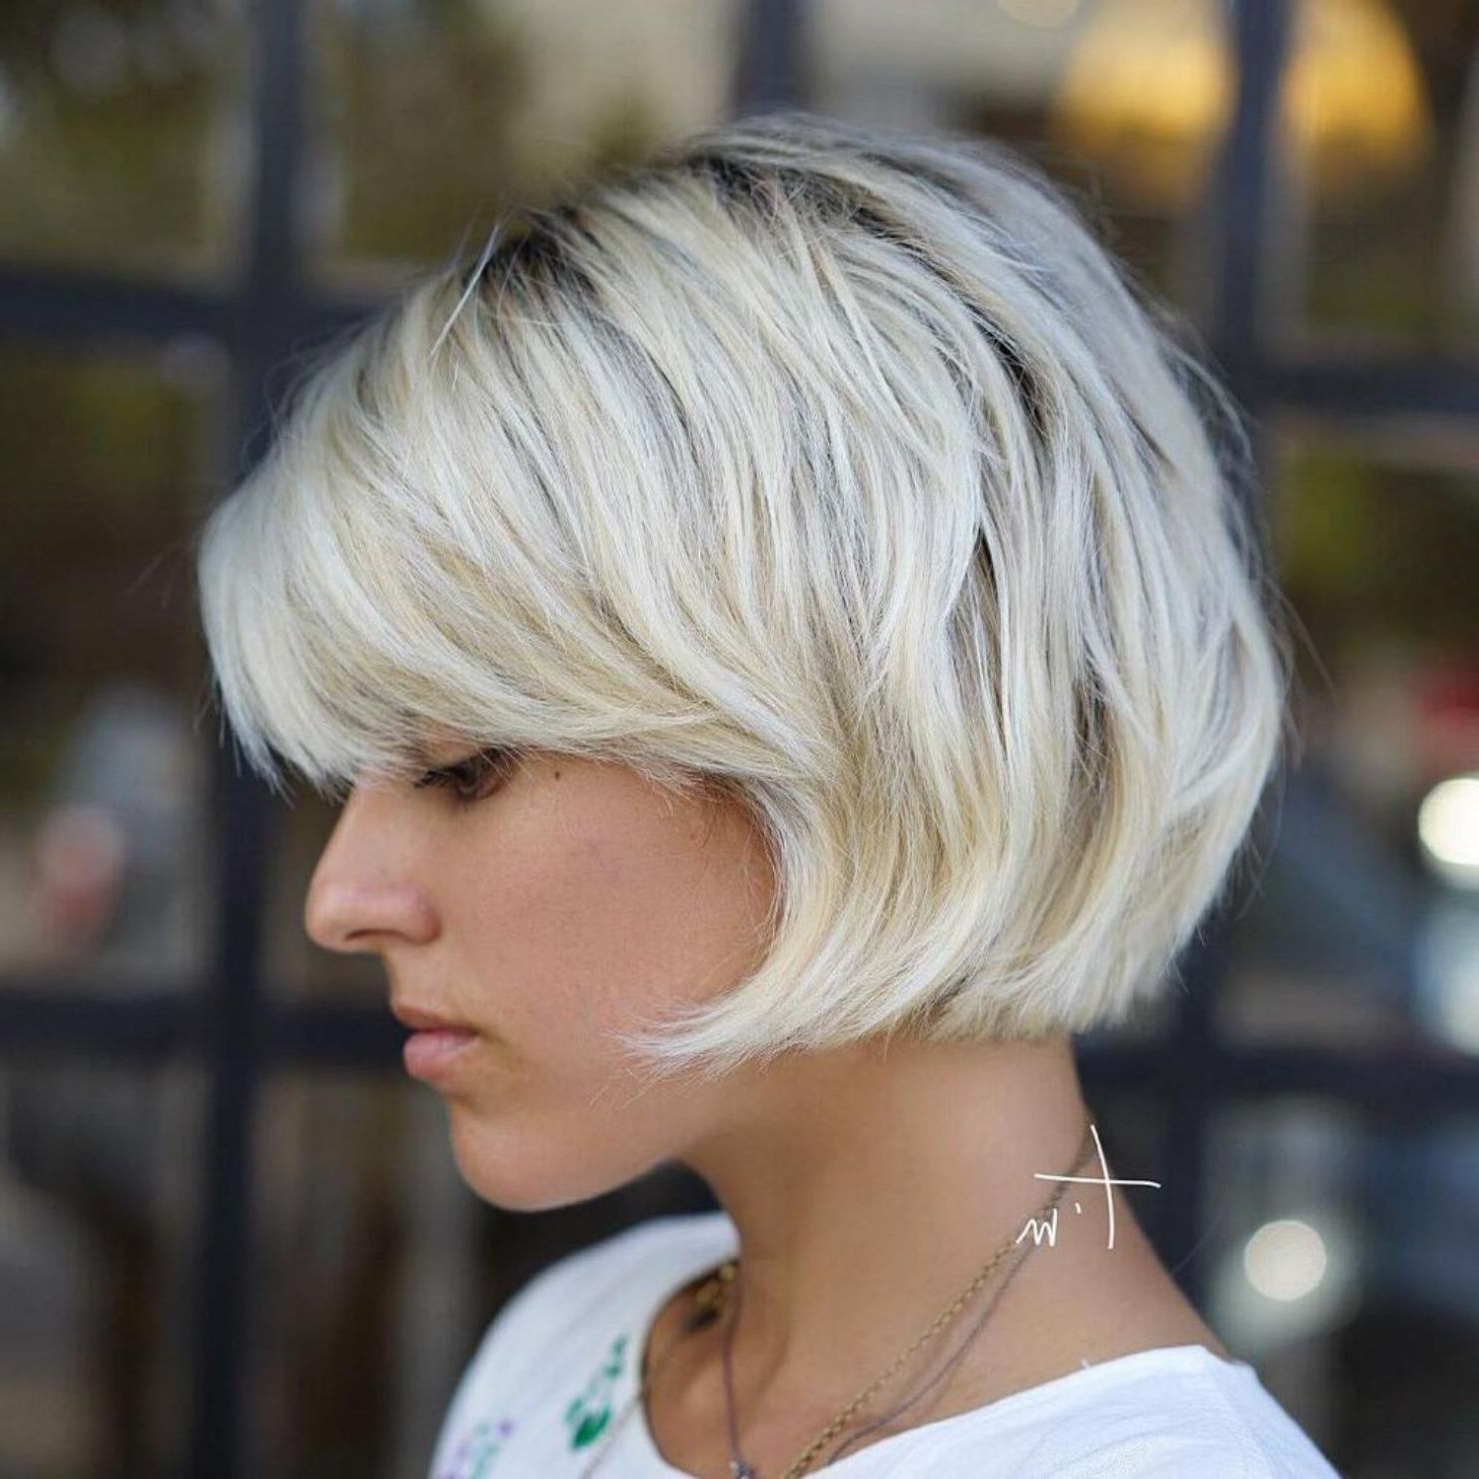 60 Short Shag Hairstyles That You Simply Can't Miss | Cute Within Platinum Short Shag Haircuts (Gallery 1 of 20)